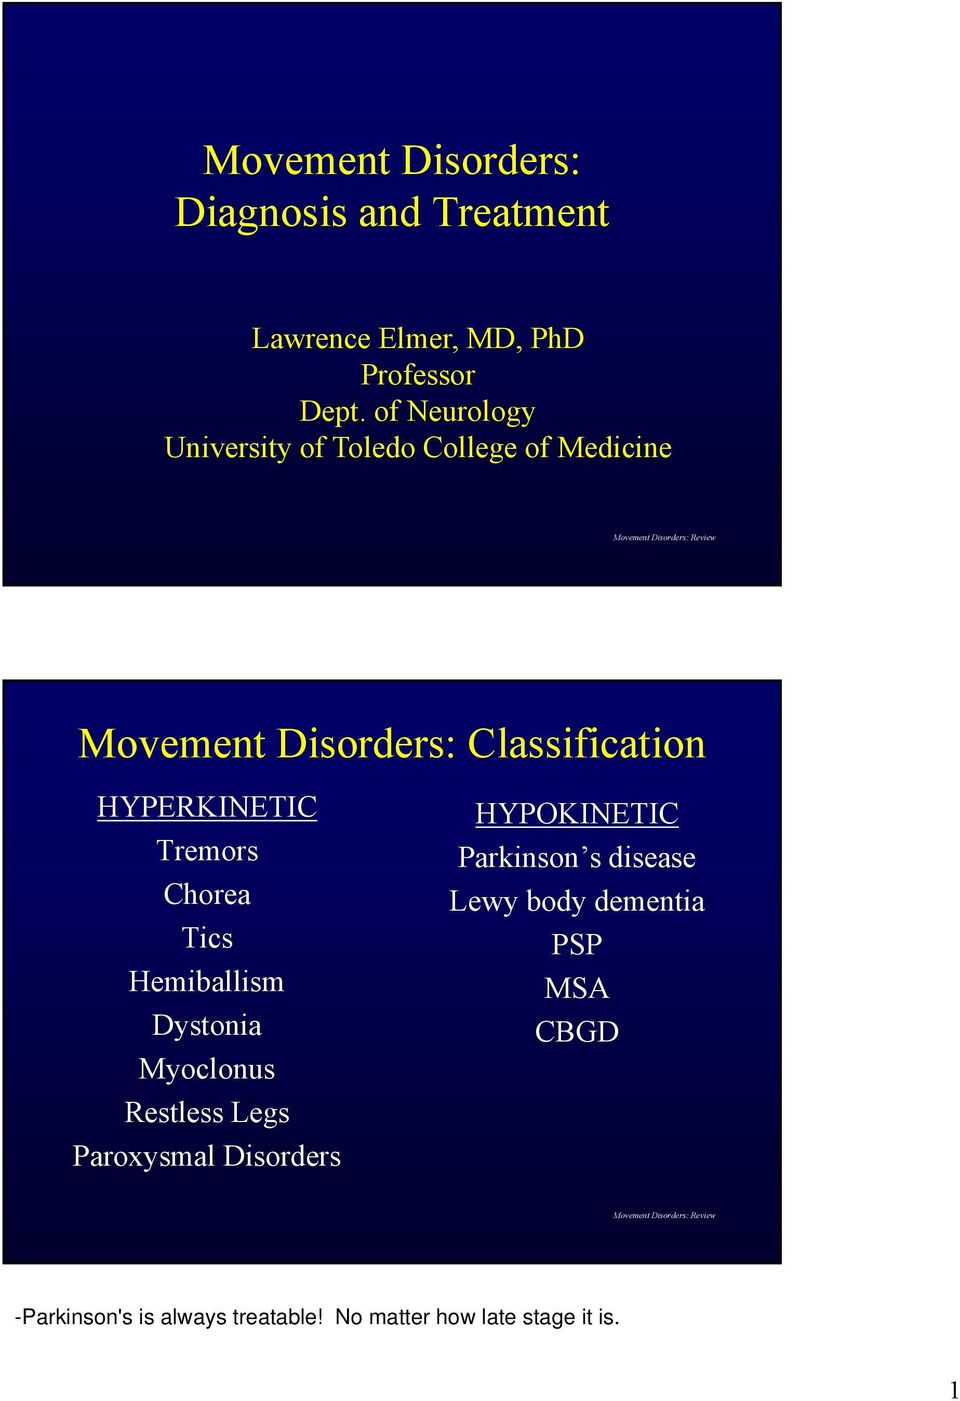 Movement Disorders: Diagnosis i and Treatment  Movement Disorders